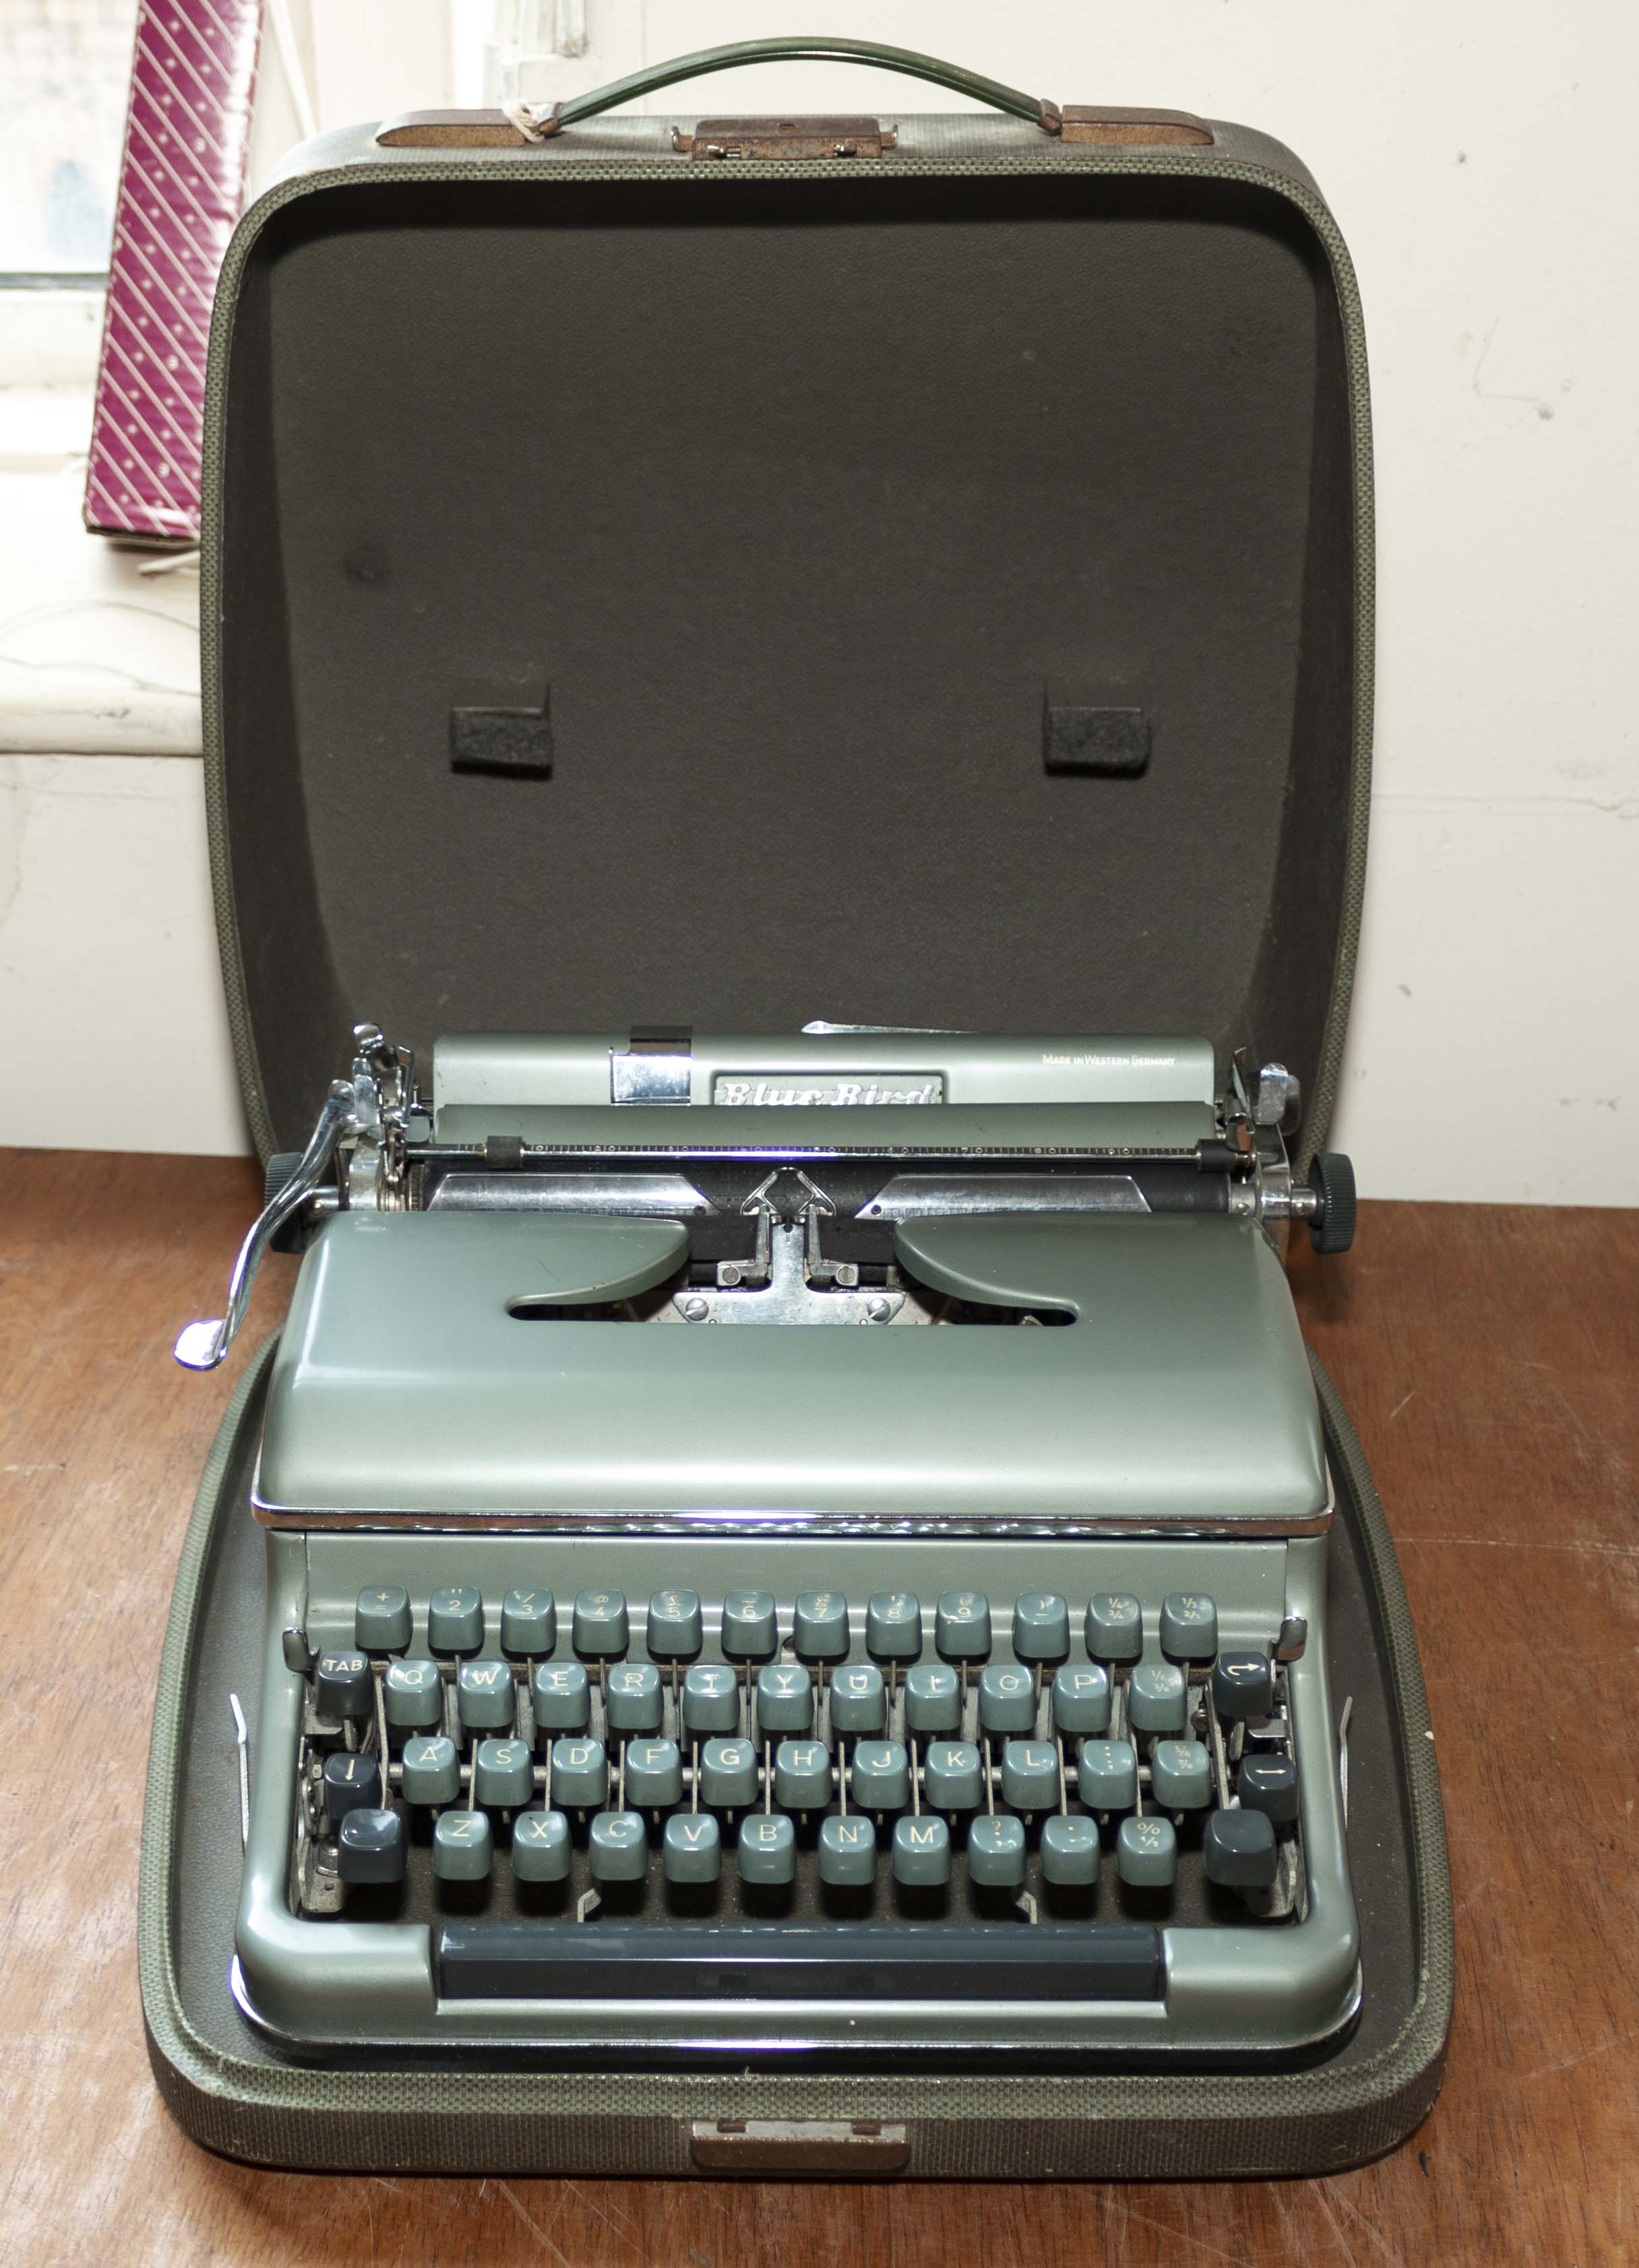 A portable typewriter